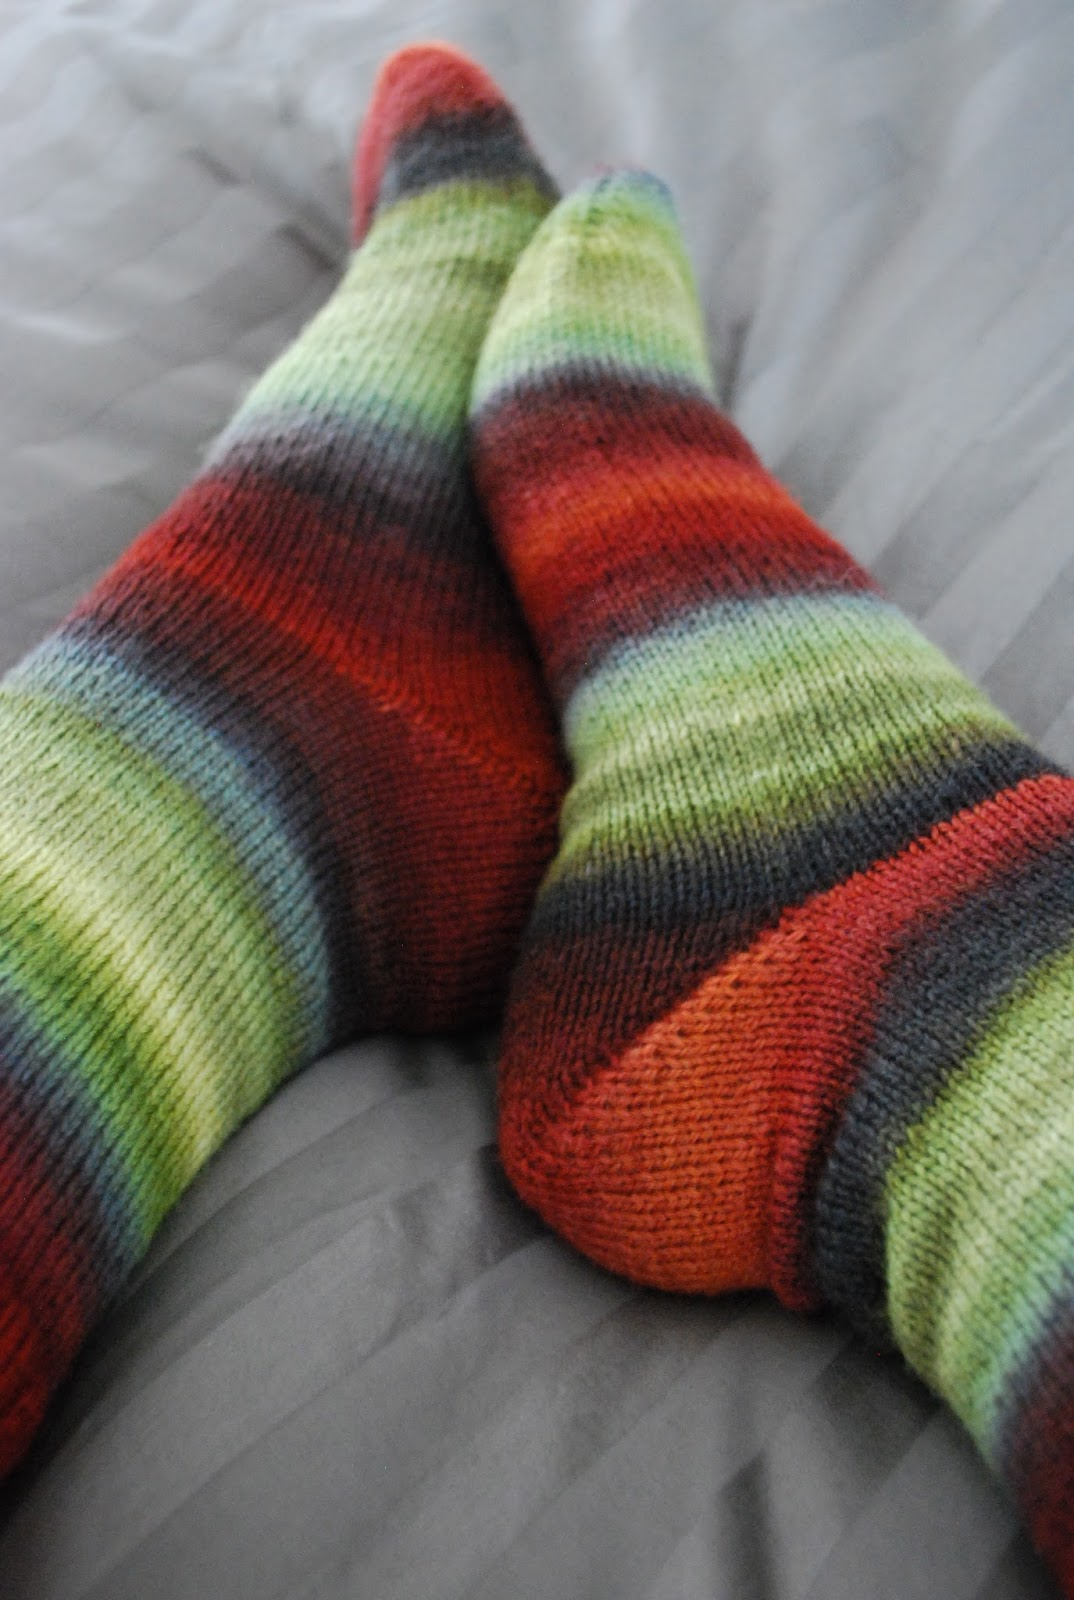 Knit/Wit: I Could Kiss These Heels